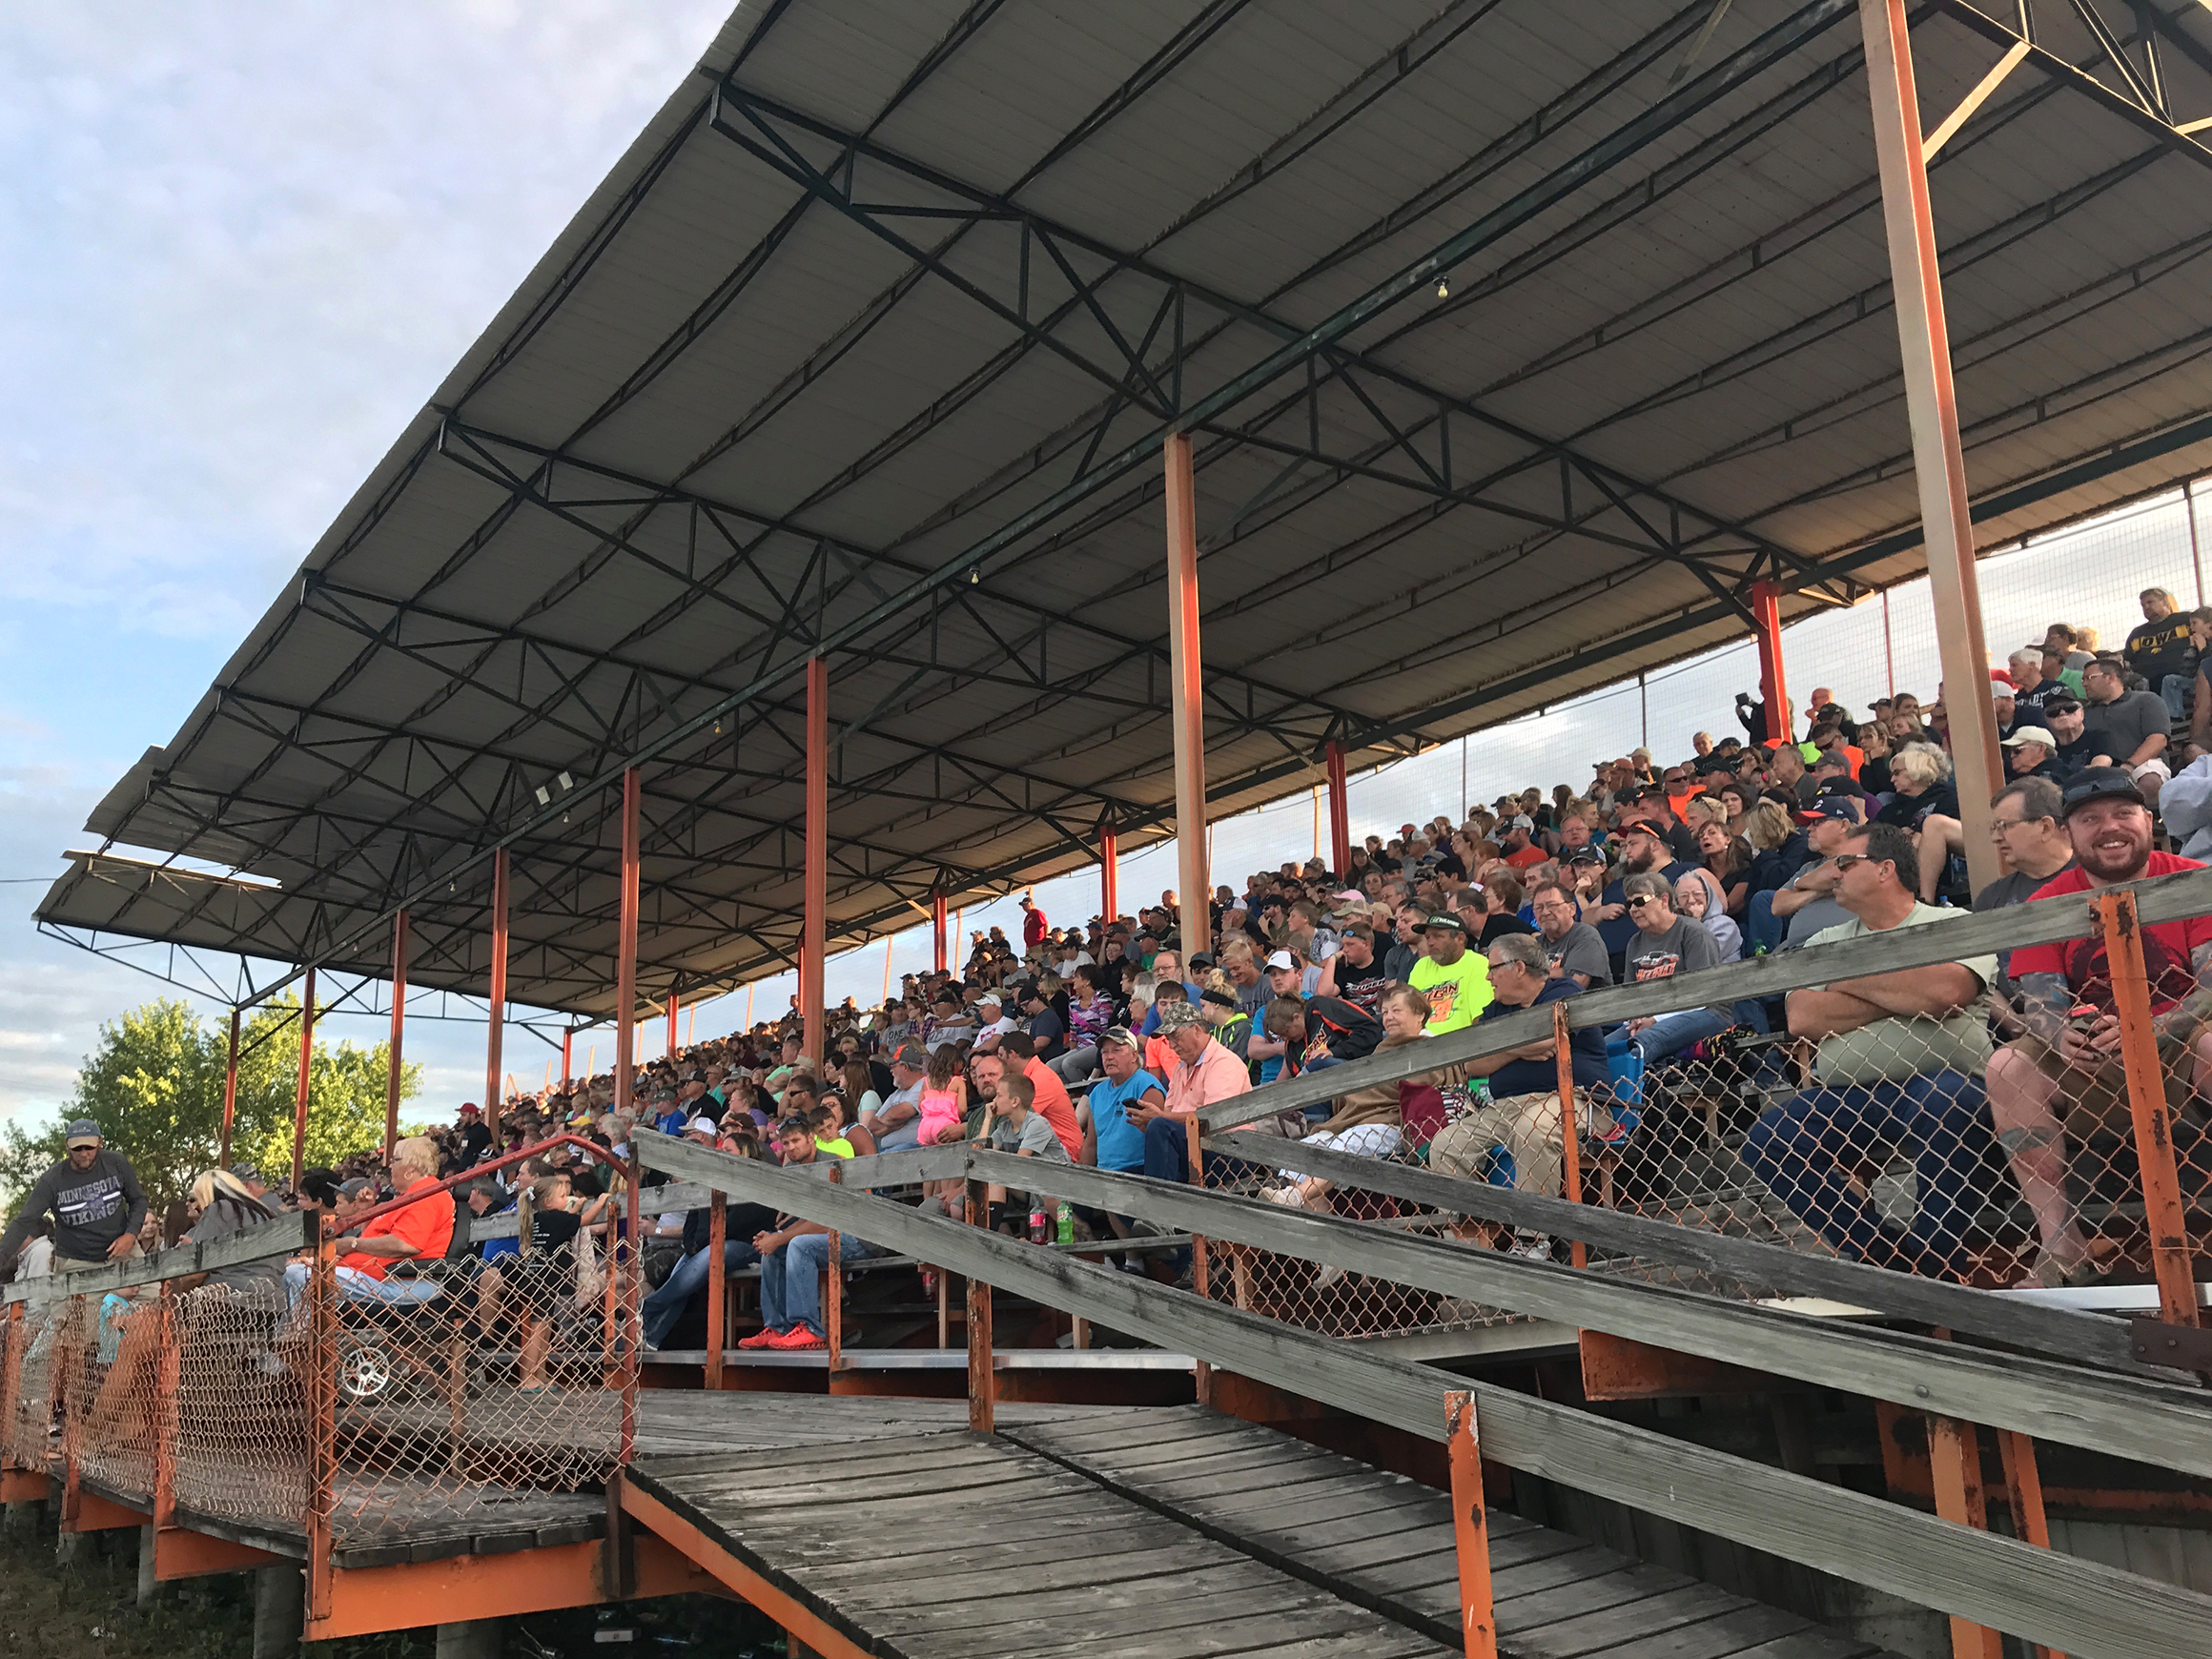 Hundreds of people packed the grandstands at the Benton County Speedway in Vinton, Iowa, on a Sunday night in June for the weekly races. (Ryan Young/The Gazette)